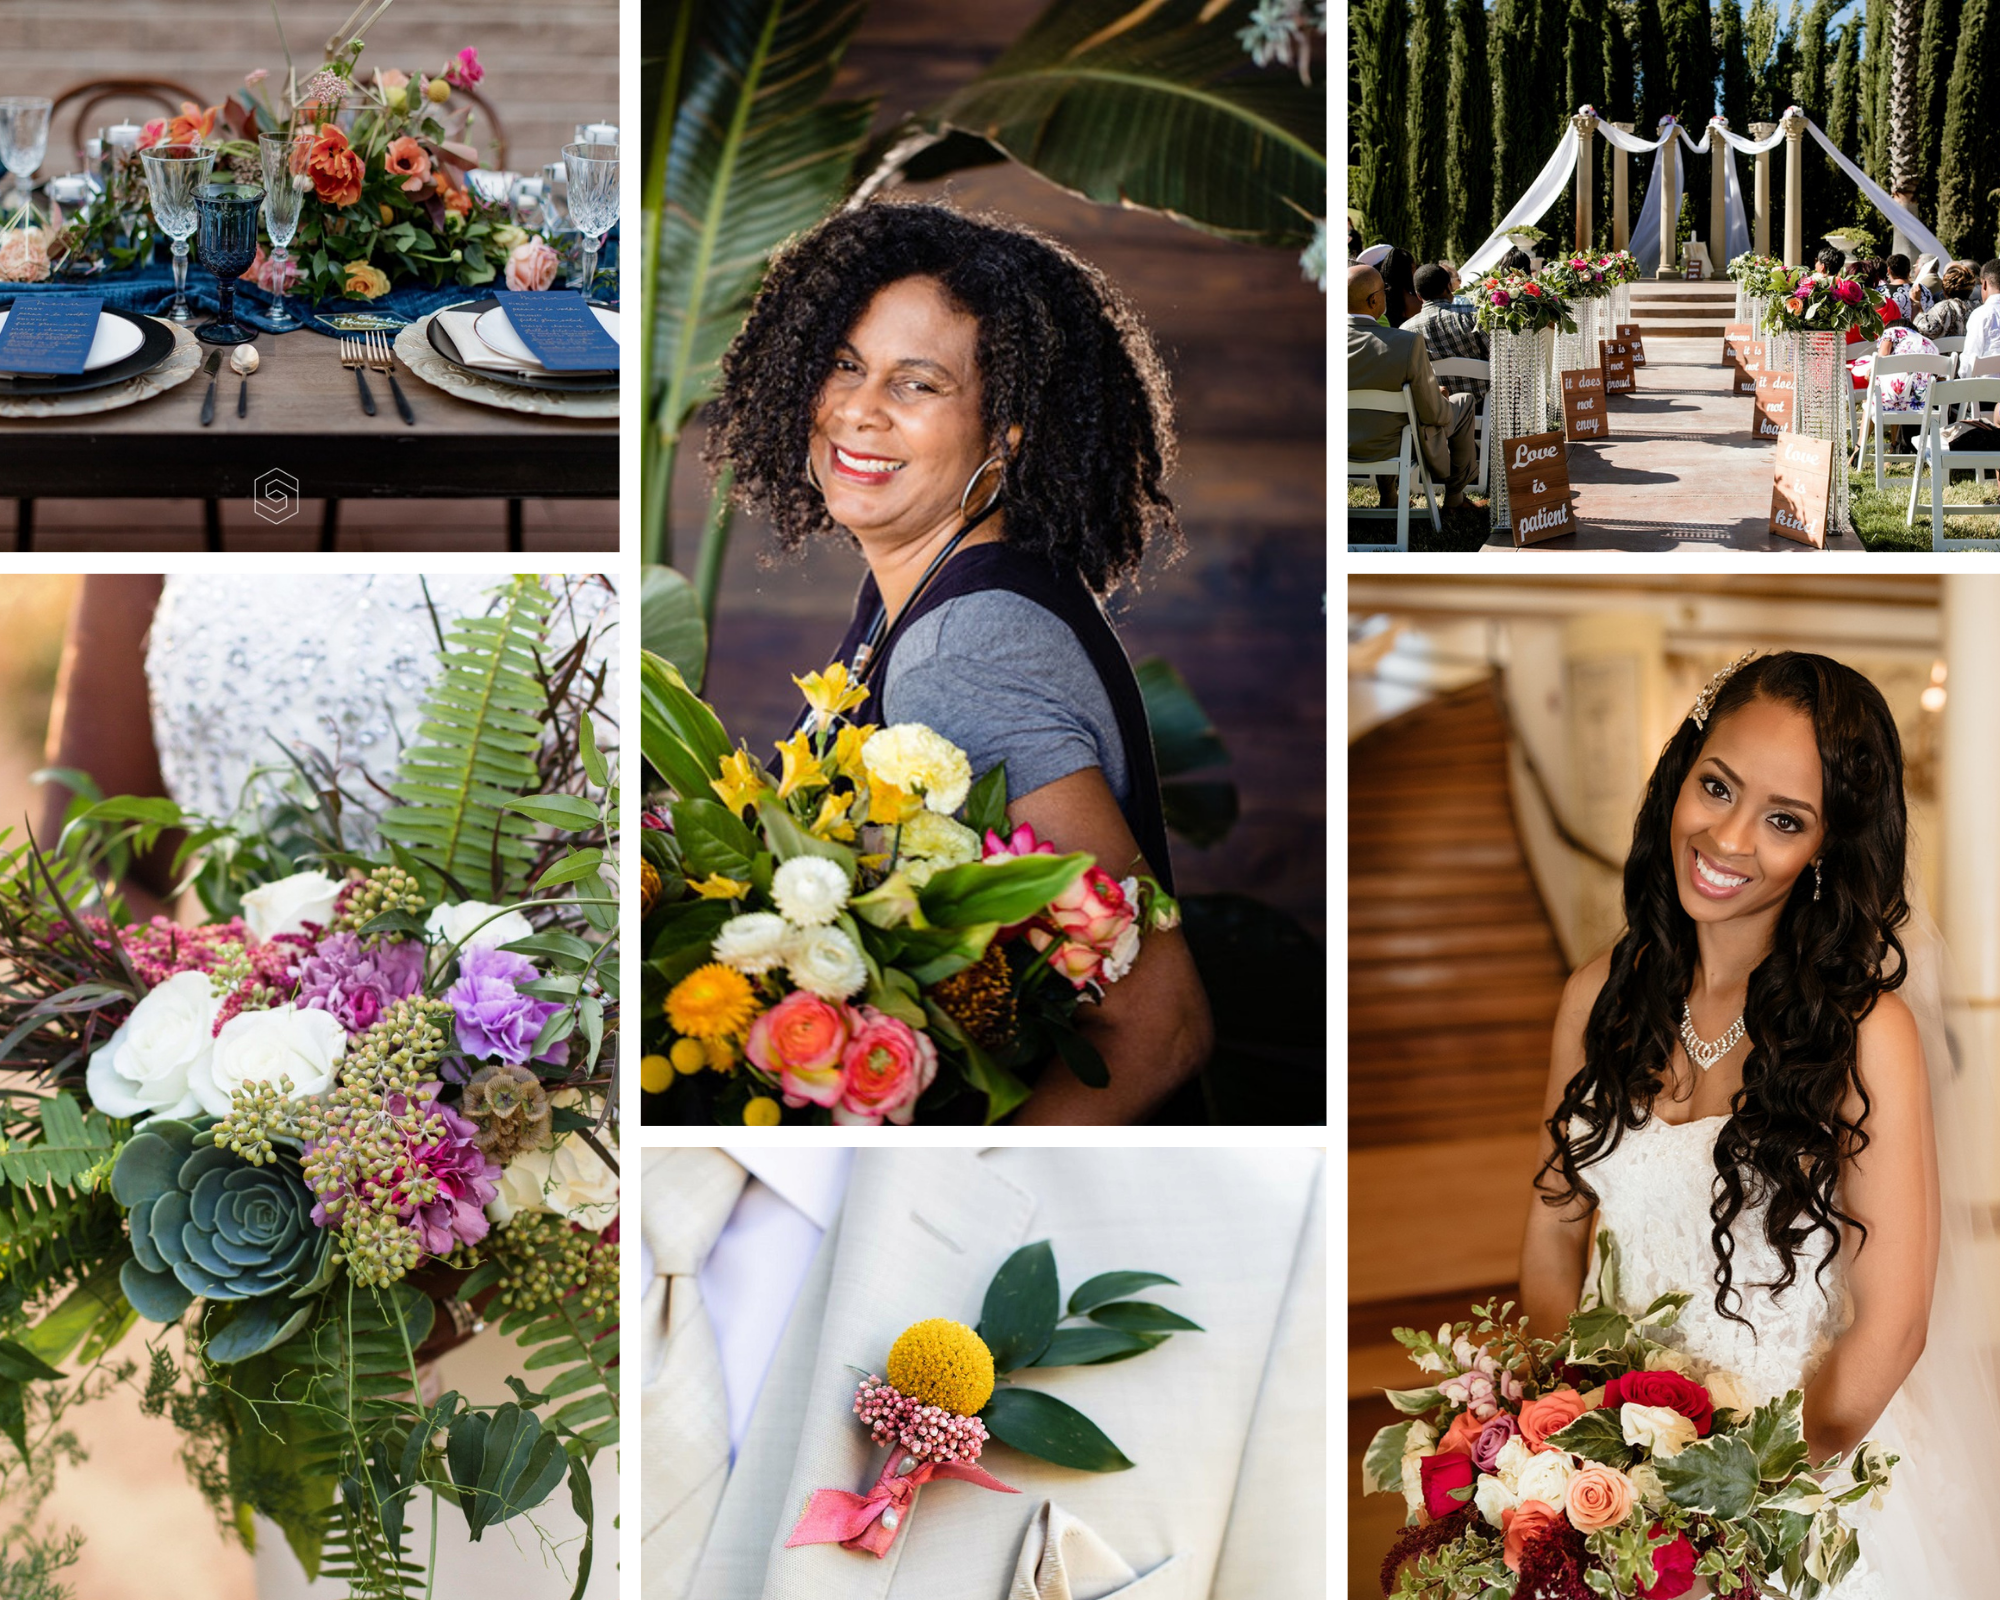 Lake Tahoe wedding vendor spotlight - Inspirations by Gina